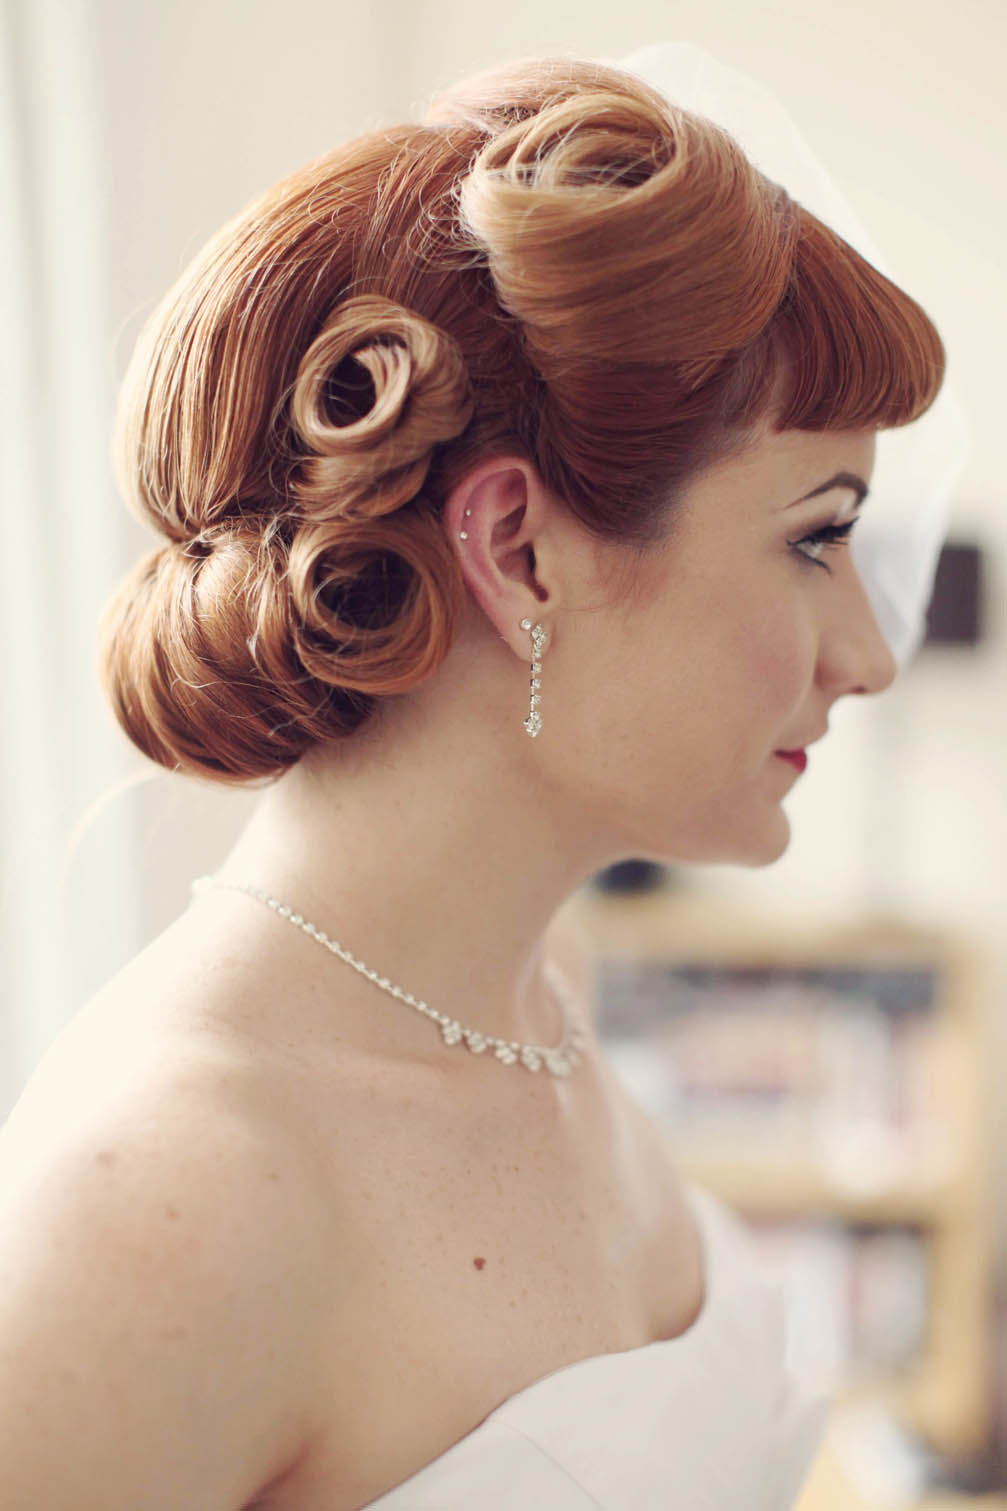 1950s updo on pinterest updo hairstyle hairstyles and rockabilly updo. Black Bedroom Furniture Sets. Home Design Ideas